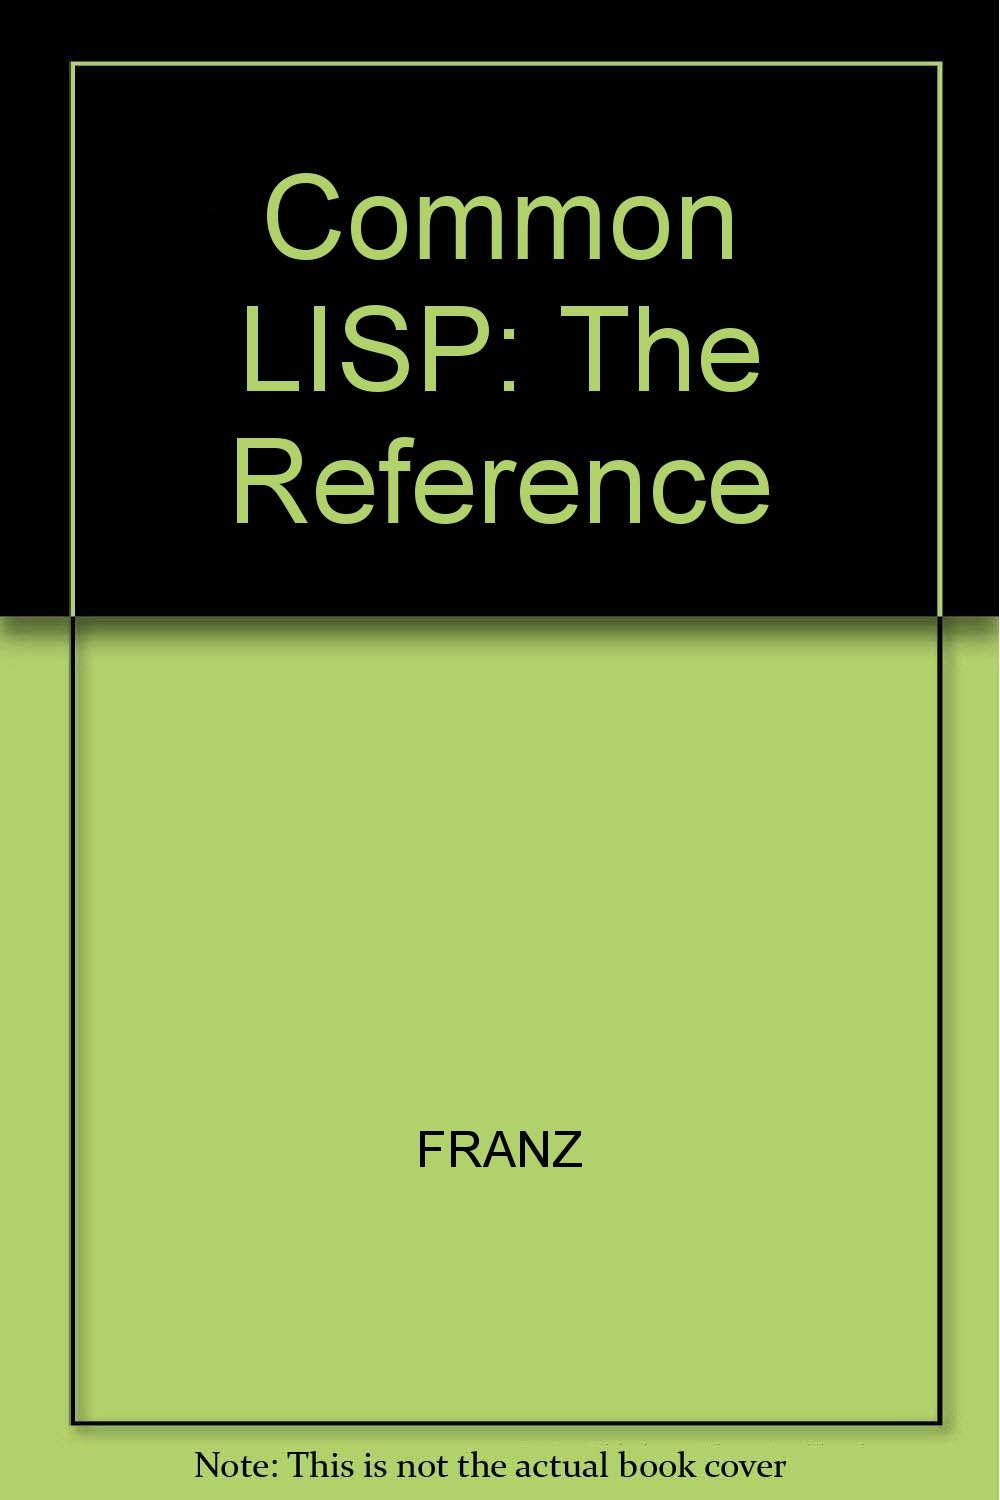 Common Lisp: The Reference